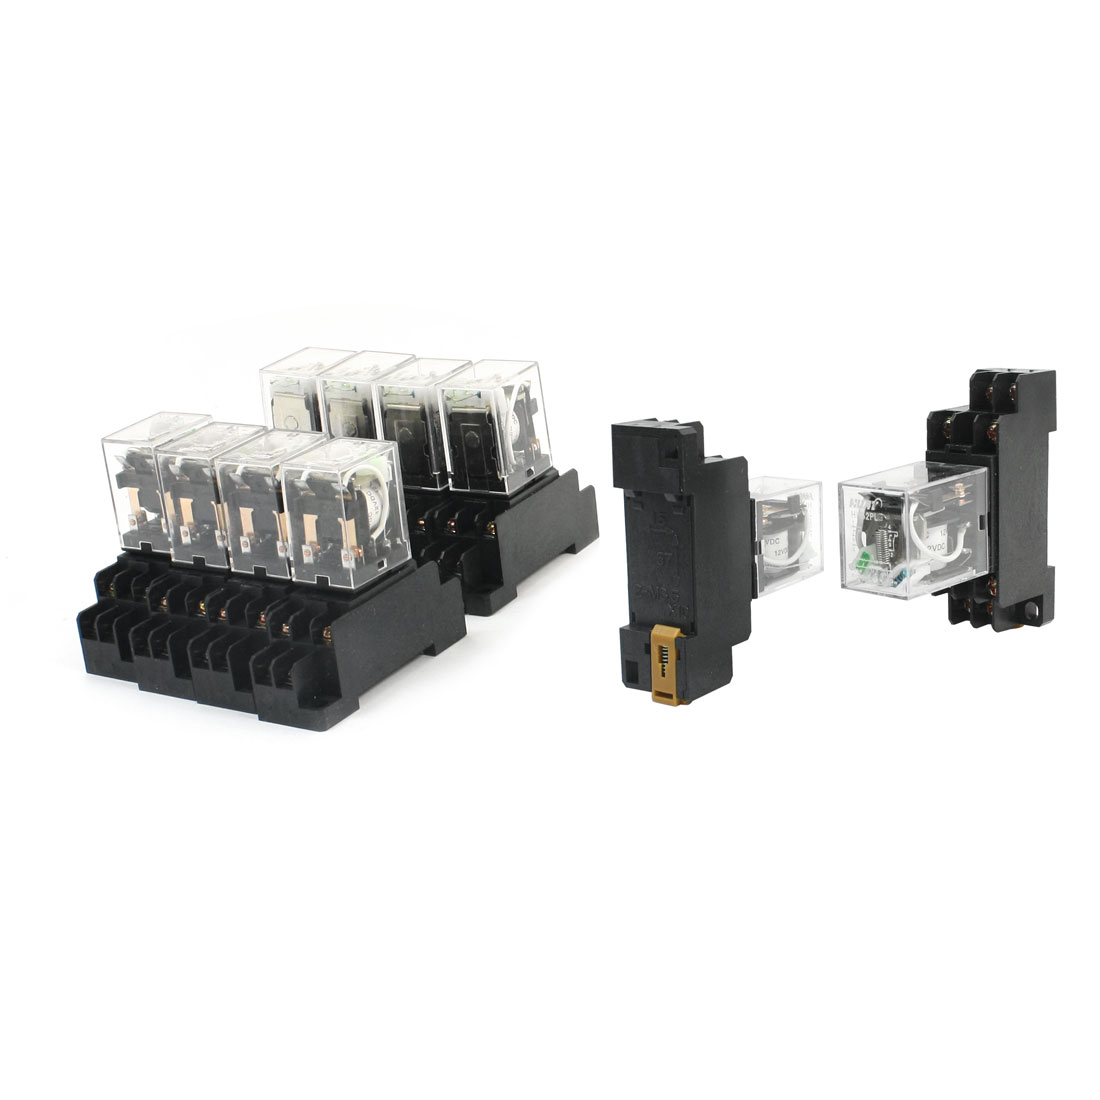 10Pcs DC 12V 35mm 35mm DIN Rail Mounting Socket DPDT 2NO 2NC 8 Pins Terminal Plug-in General Purpose Coil Power Relay